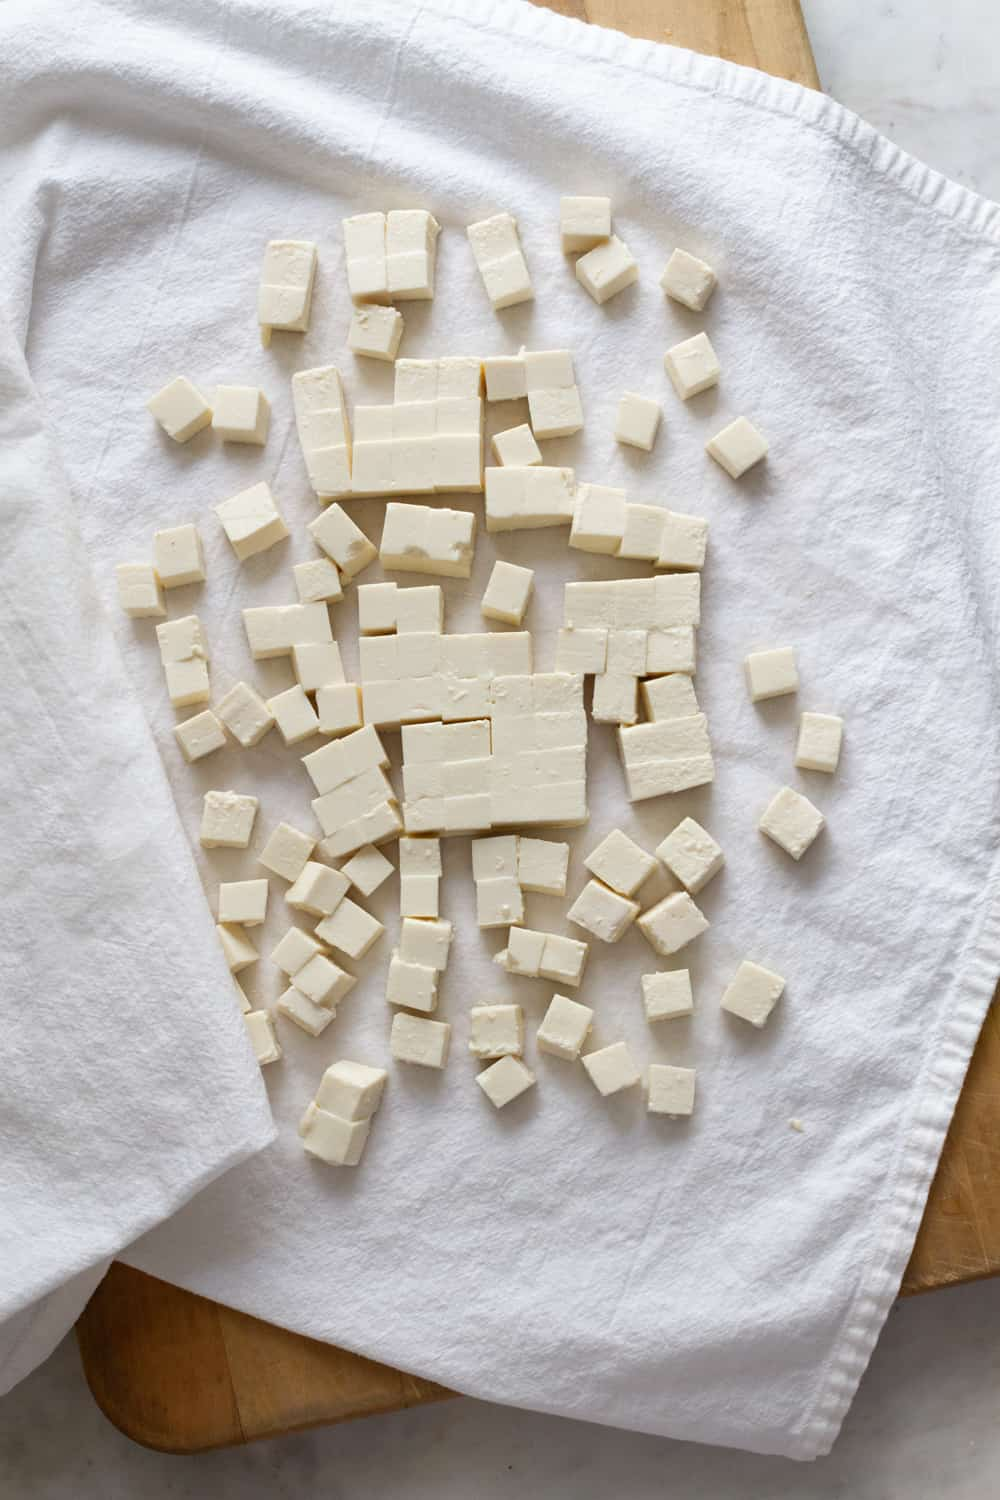 tofu cubed an placed in a single layer on a flour sack towel to remove excess water